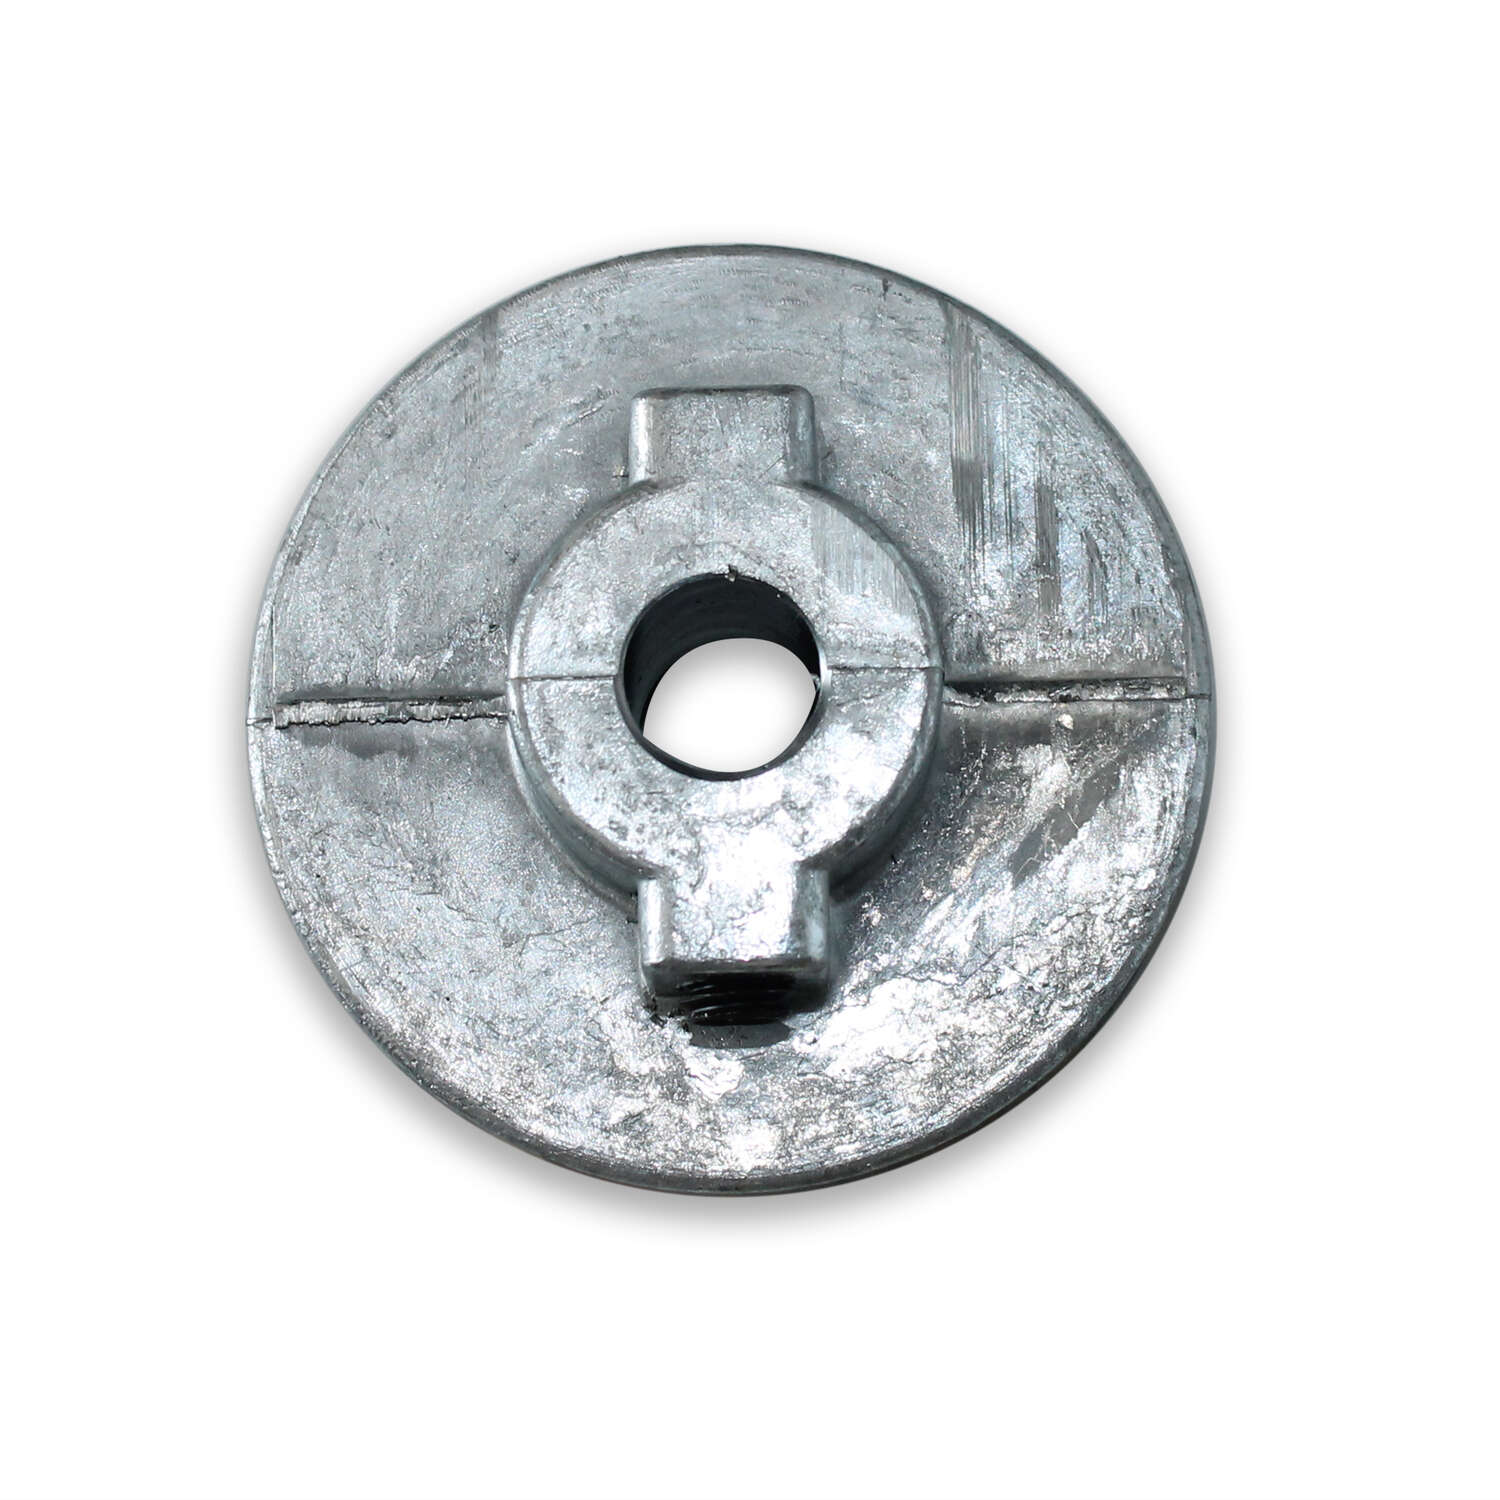 Chicago Die Cast Single V Grooved Pulley A 5 in. x 1/2 in. Bulk